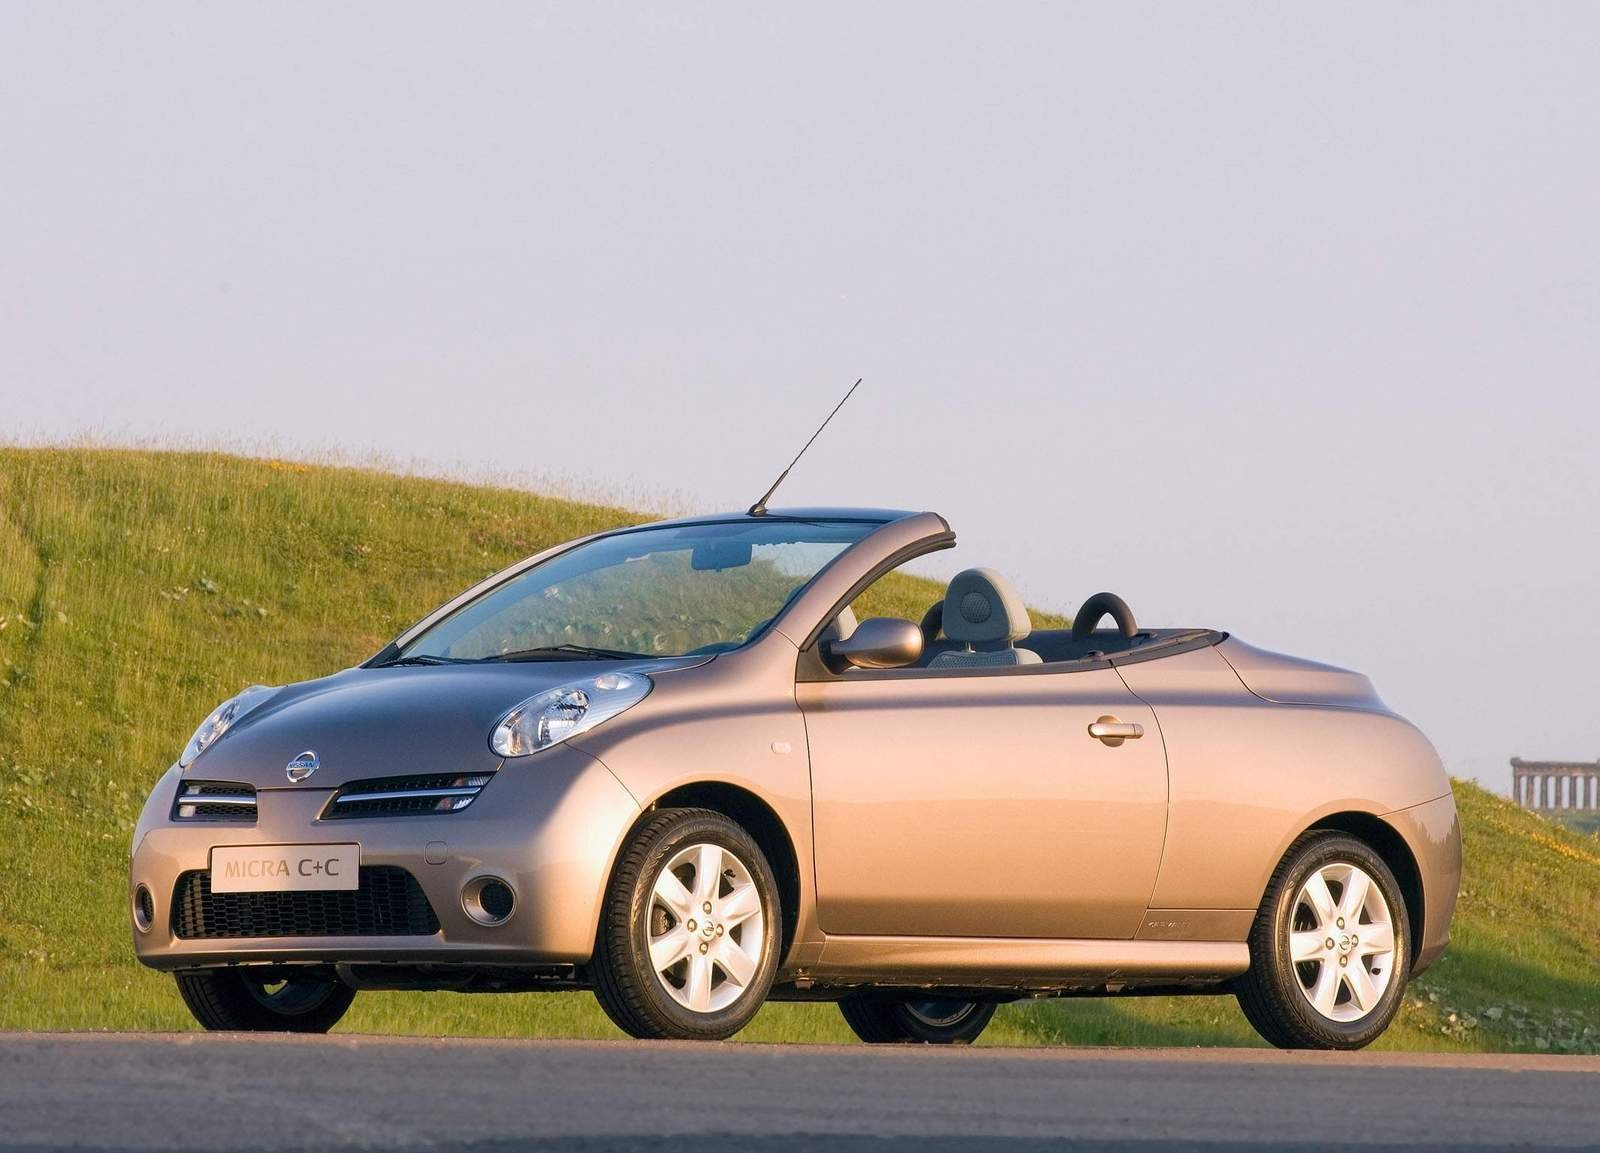 nissan micra c c going to japan news top speed. Black Bedroom Furniture Sets. Home Design Ideas